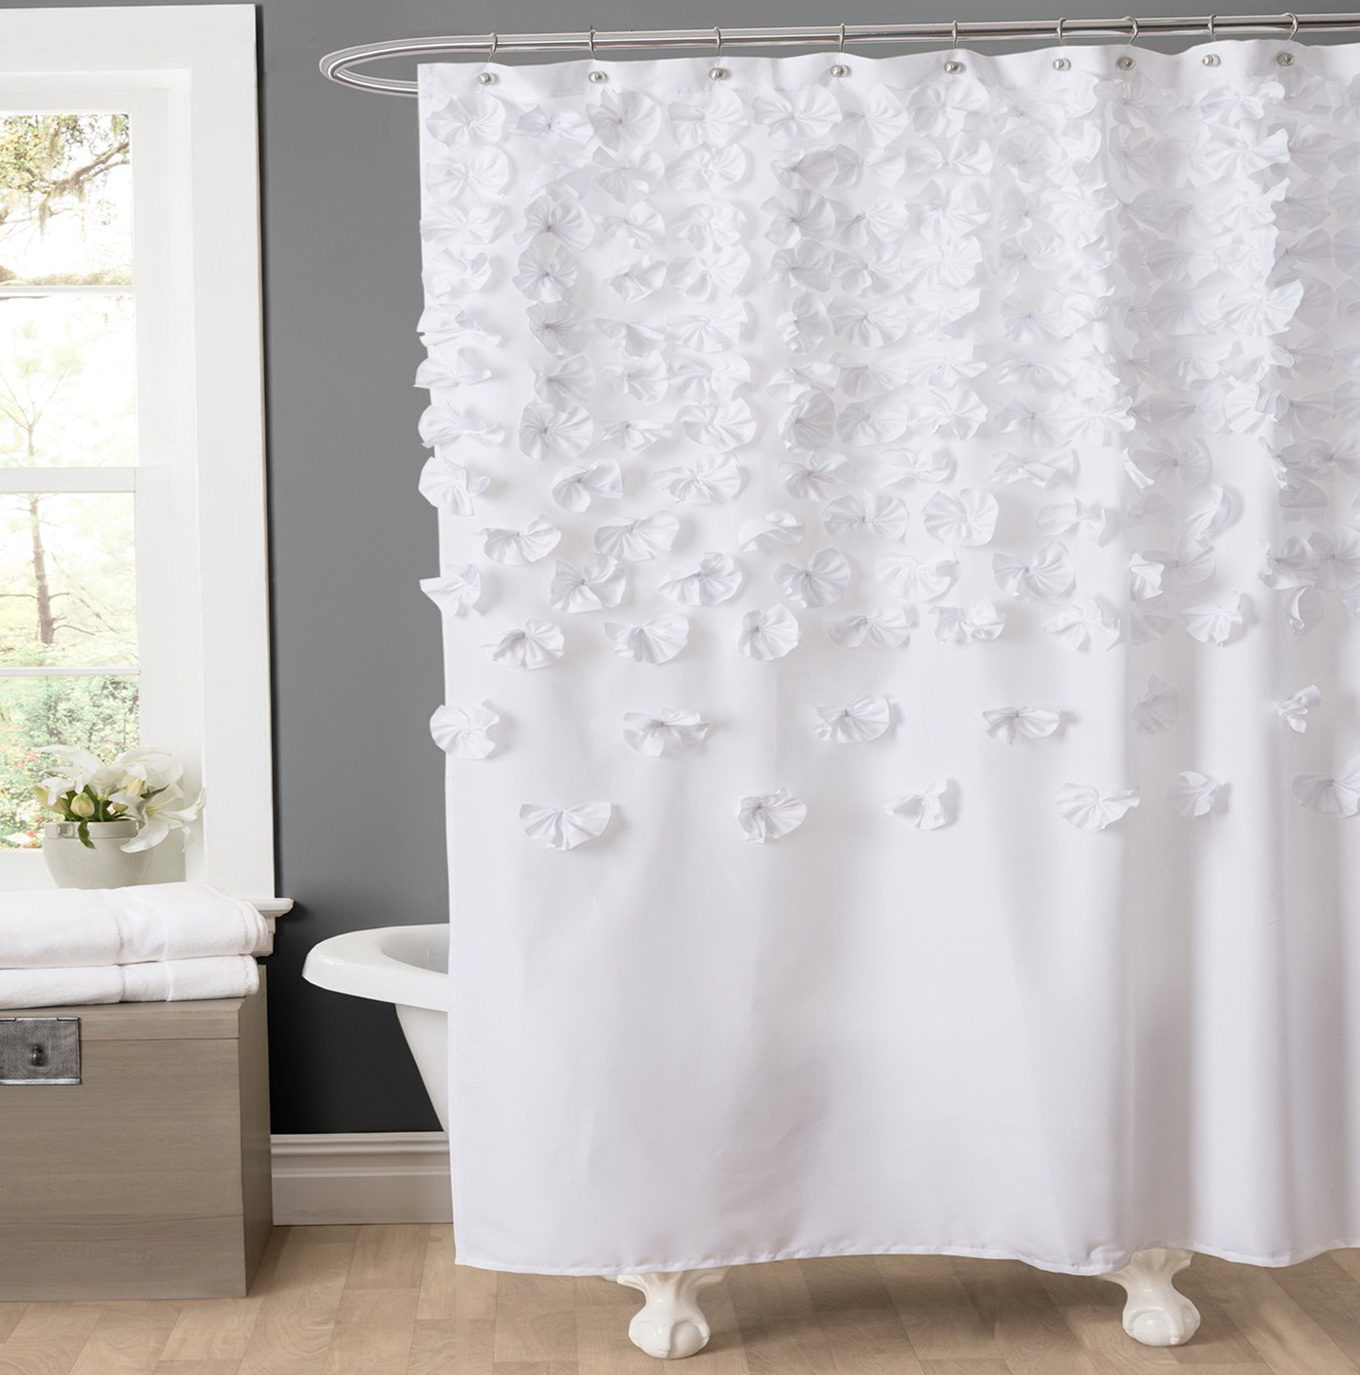 Find great deals on eBay for white flower shower curtain. Shop with confidence.